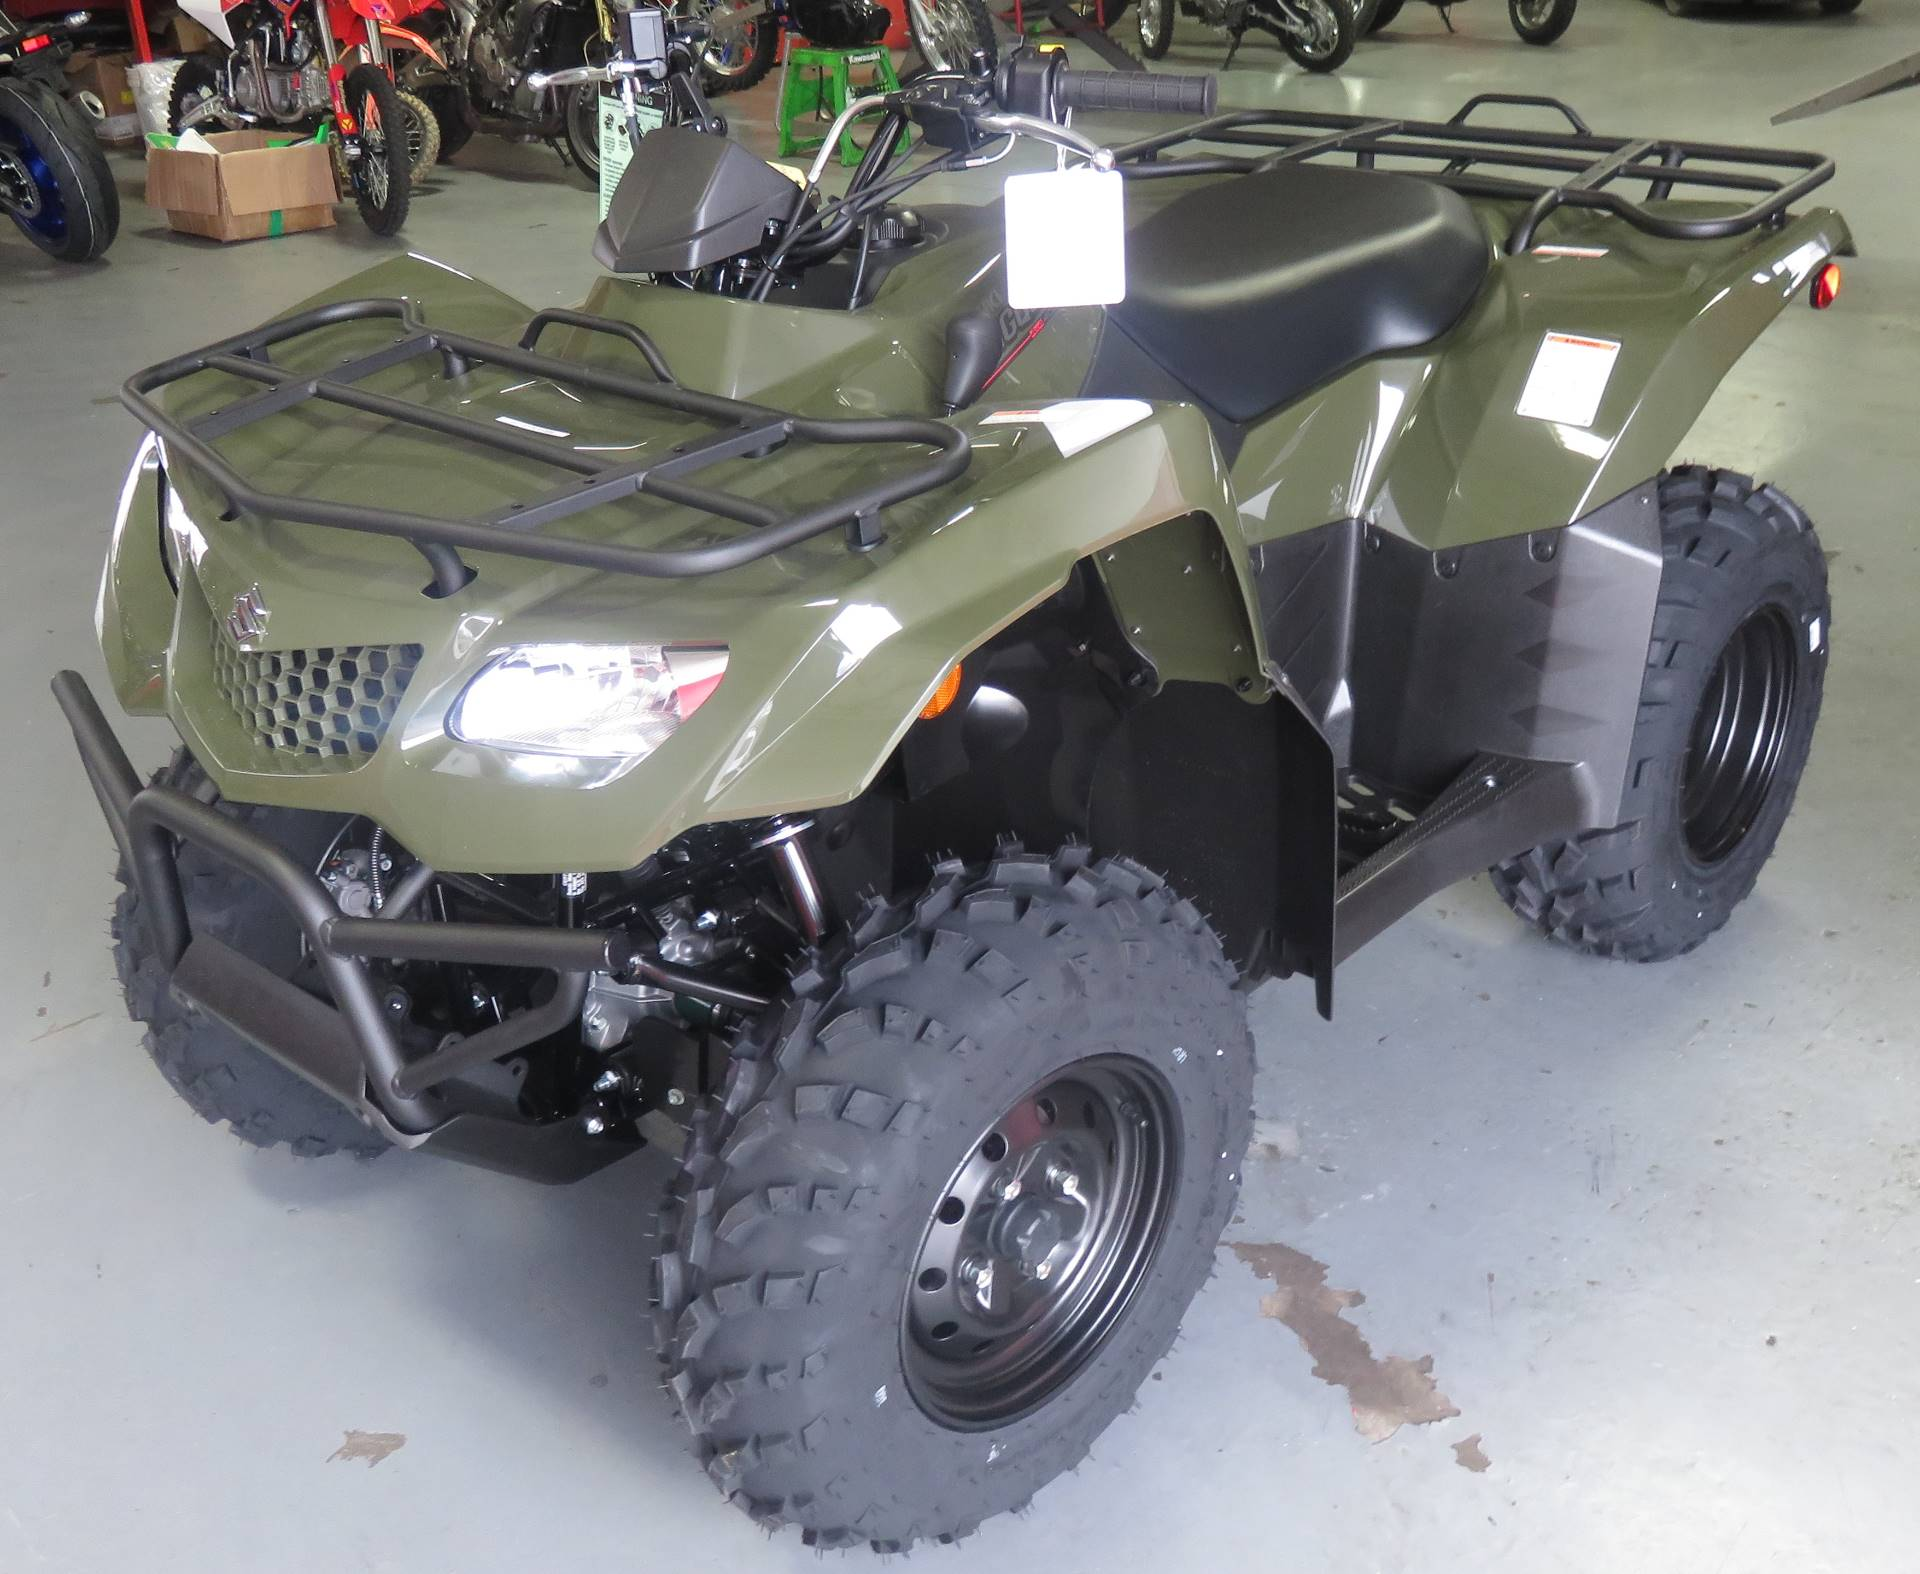 2019 Suzuki KingQuad 400ASi in Virginia Beach, Virginia - Photo 1